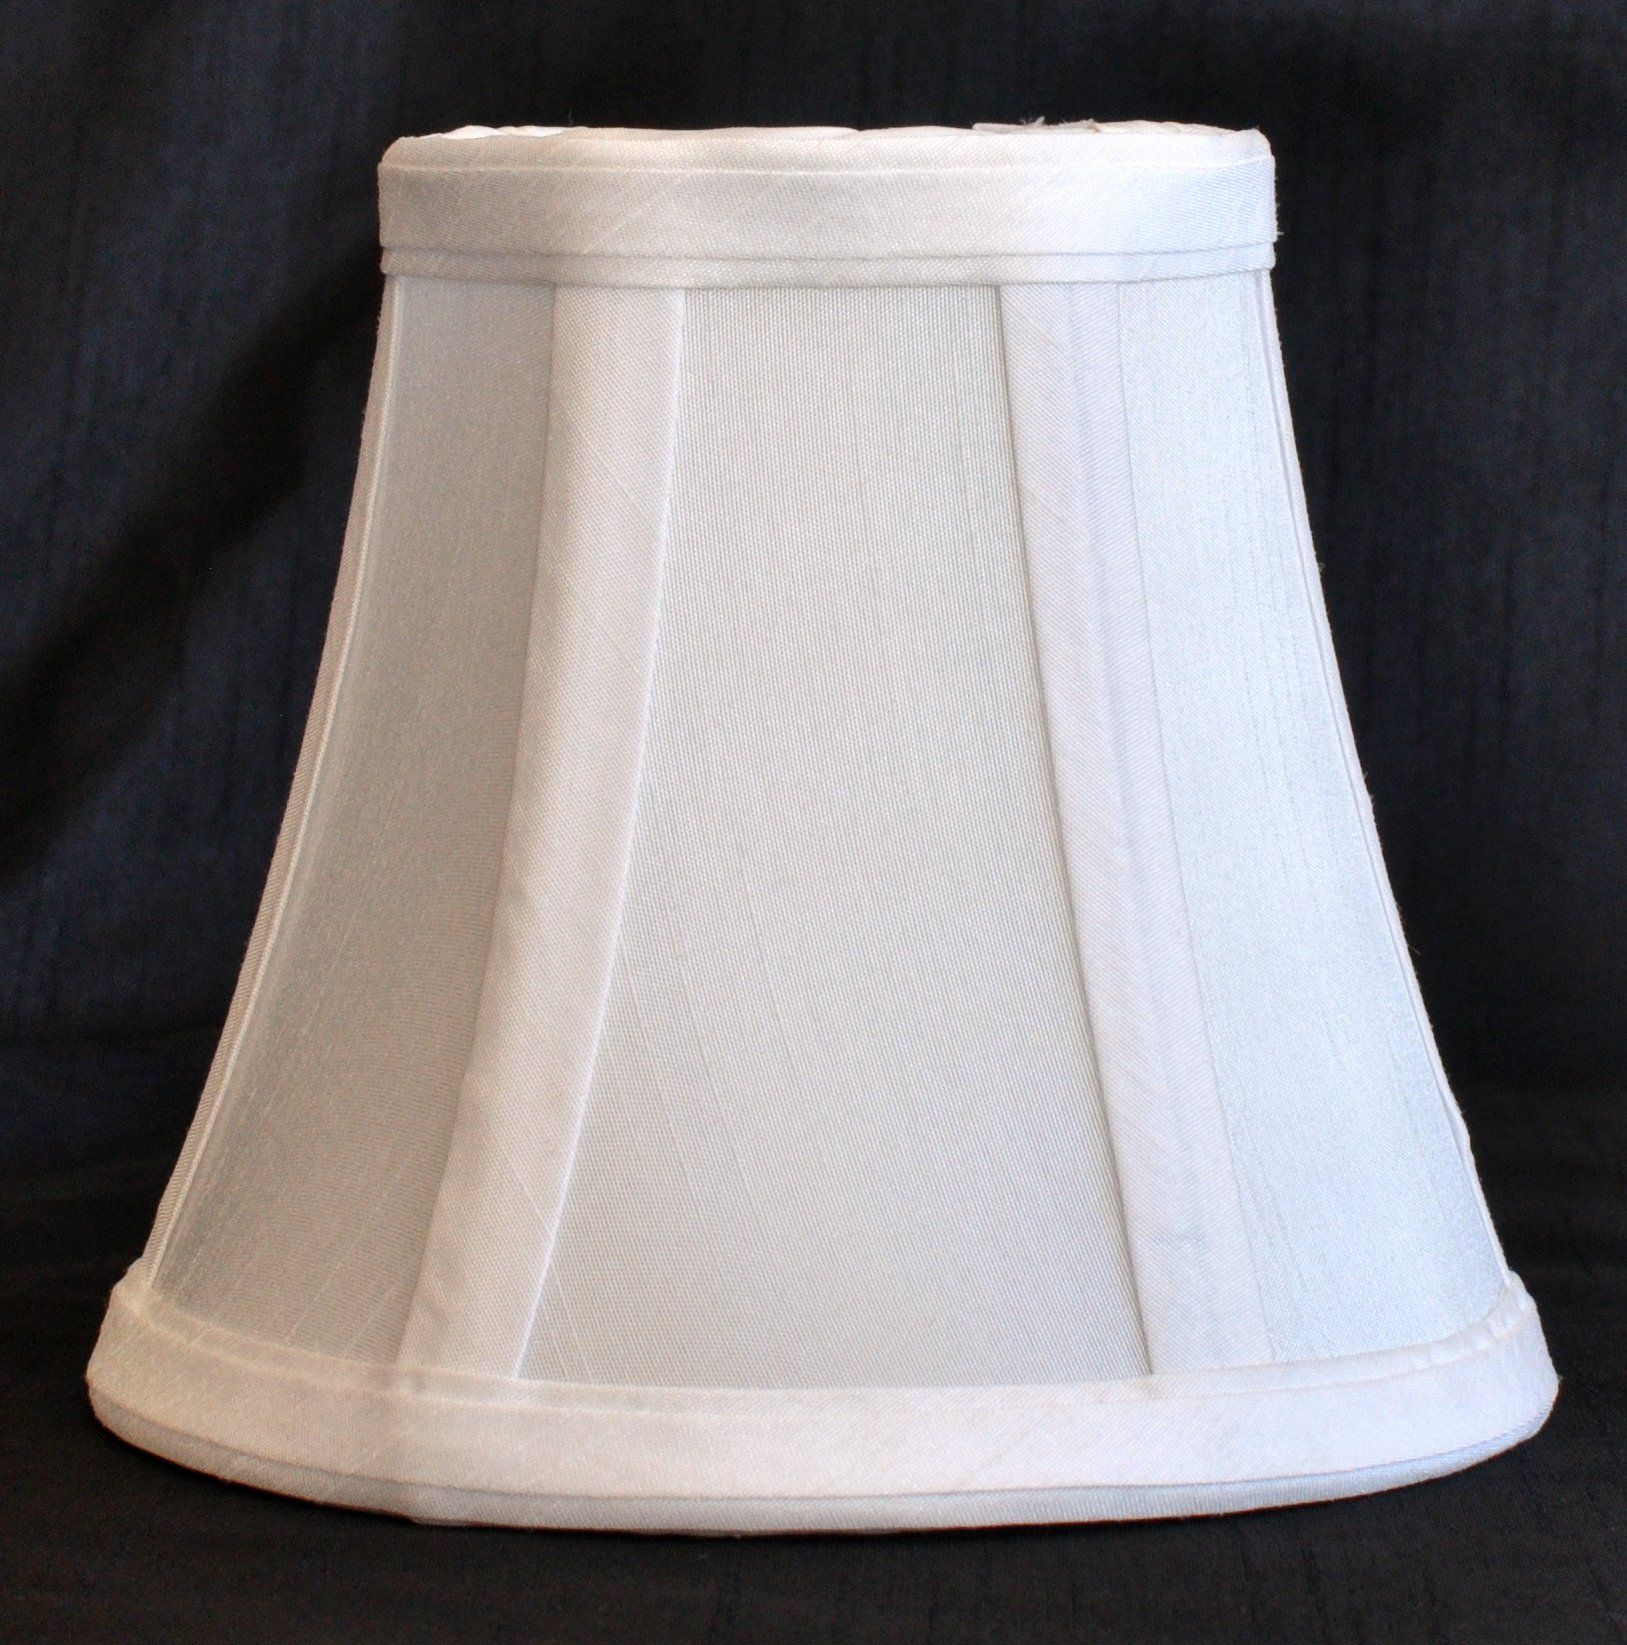 Mini lamp shades - Urbanest 1100460 Chandelier Mini Lamp Shade 5 Inch Bell Clip On Off